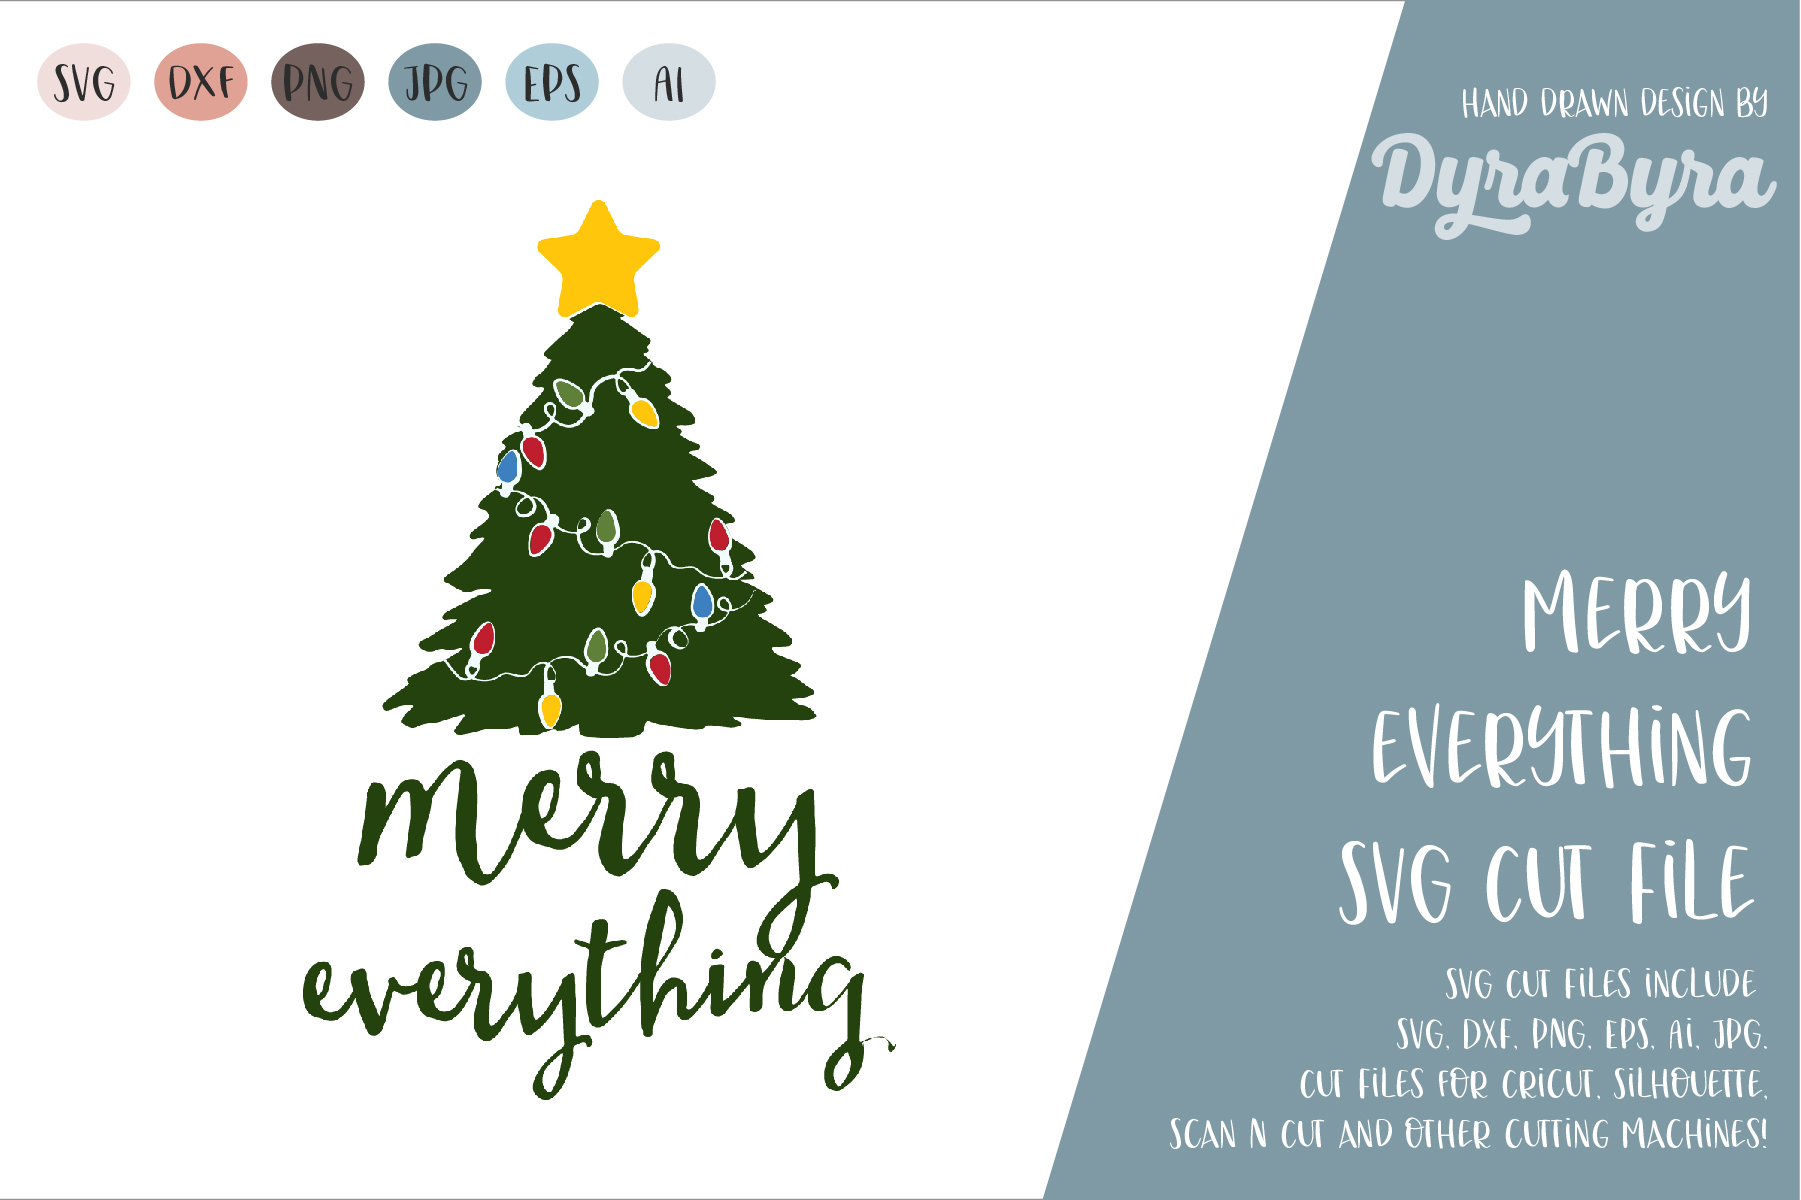 Merry Everything SVG / Christmas SVG / Chistmas Tree SVG example image 2